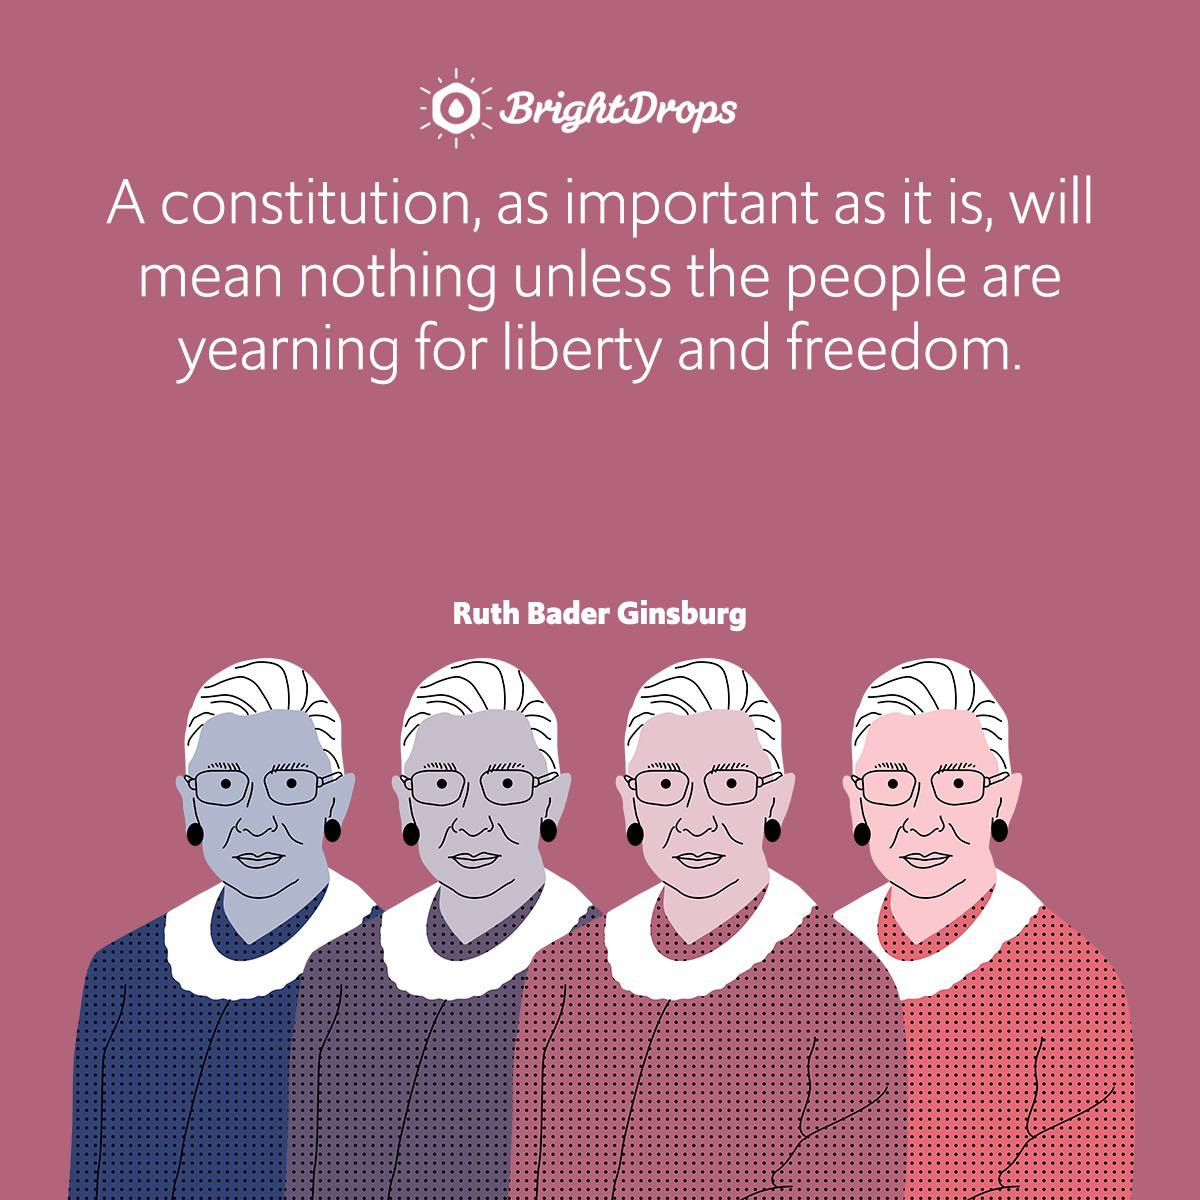 A constitution, as important as it is, will mean nothing unless the people are yearning for liberty and freedom.